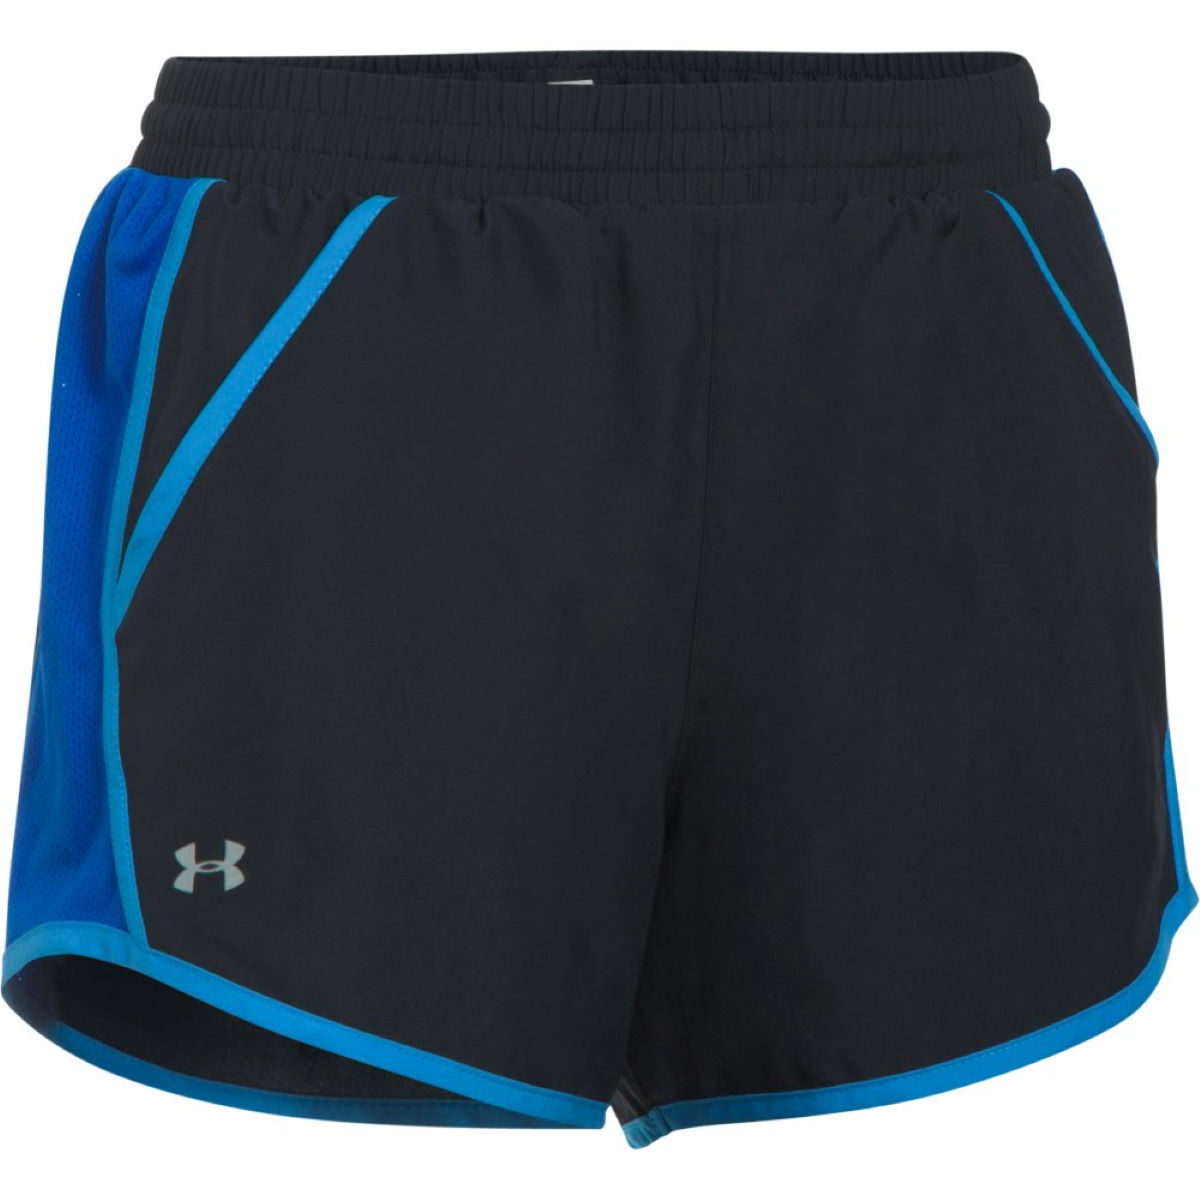 Short Femme Under Armour Fly By - XS Black/Lapis Blue